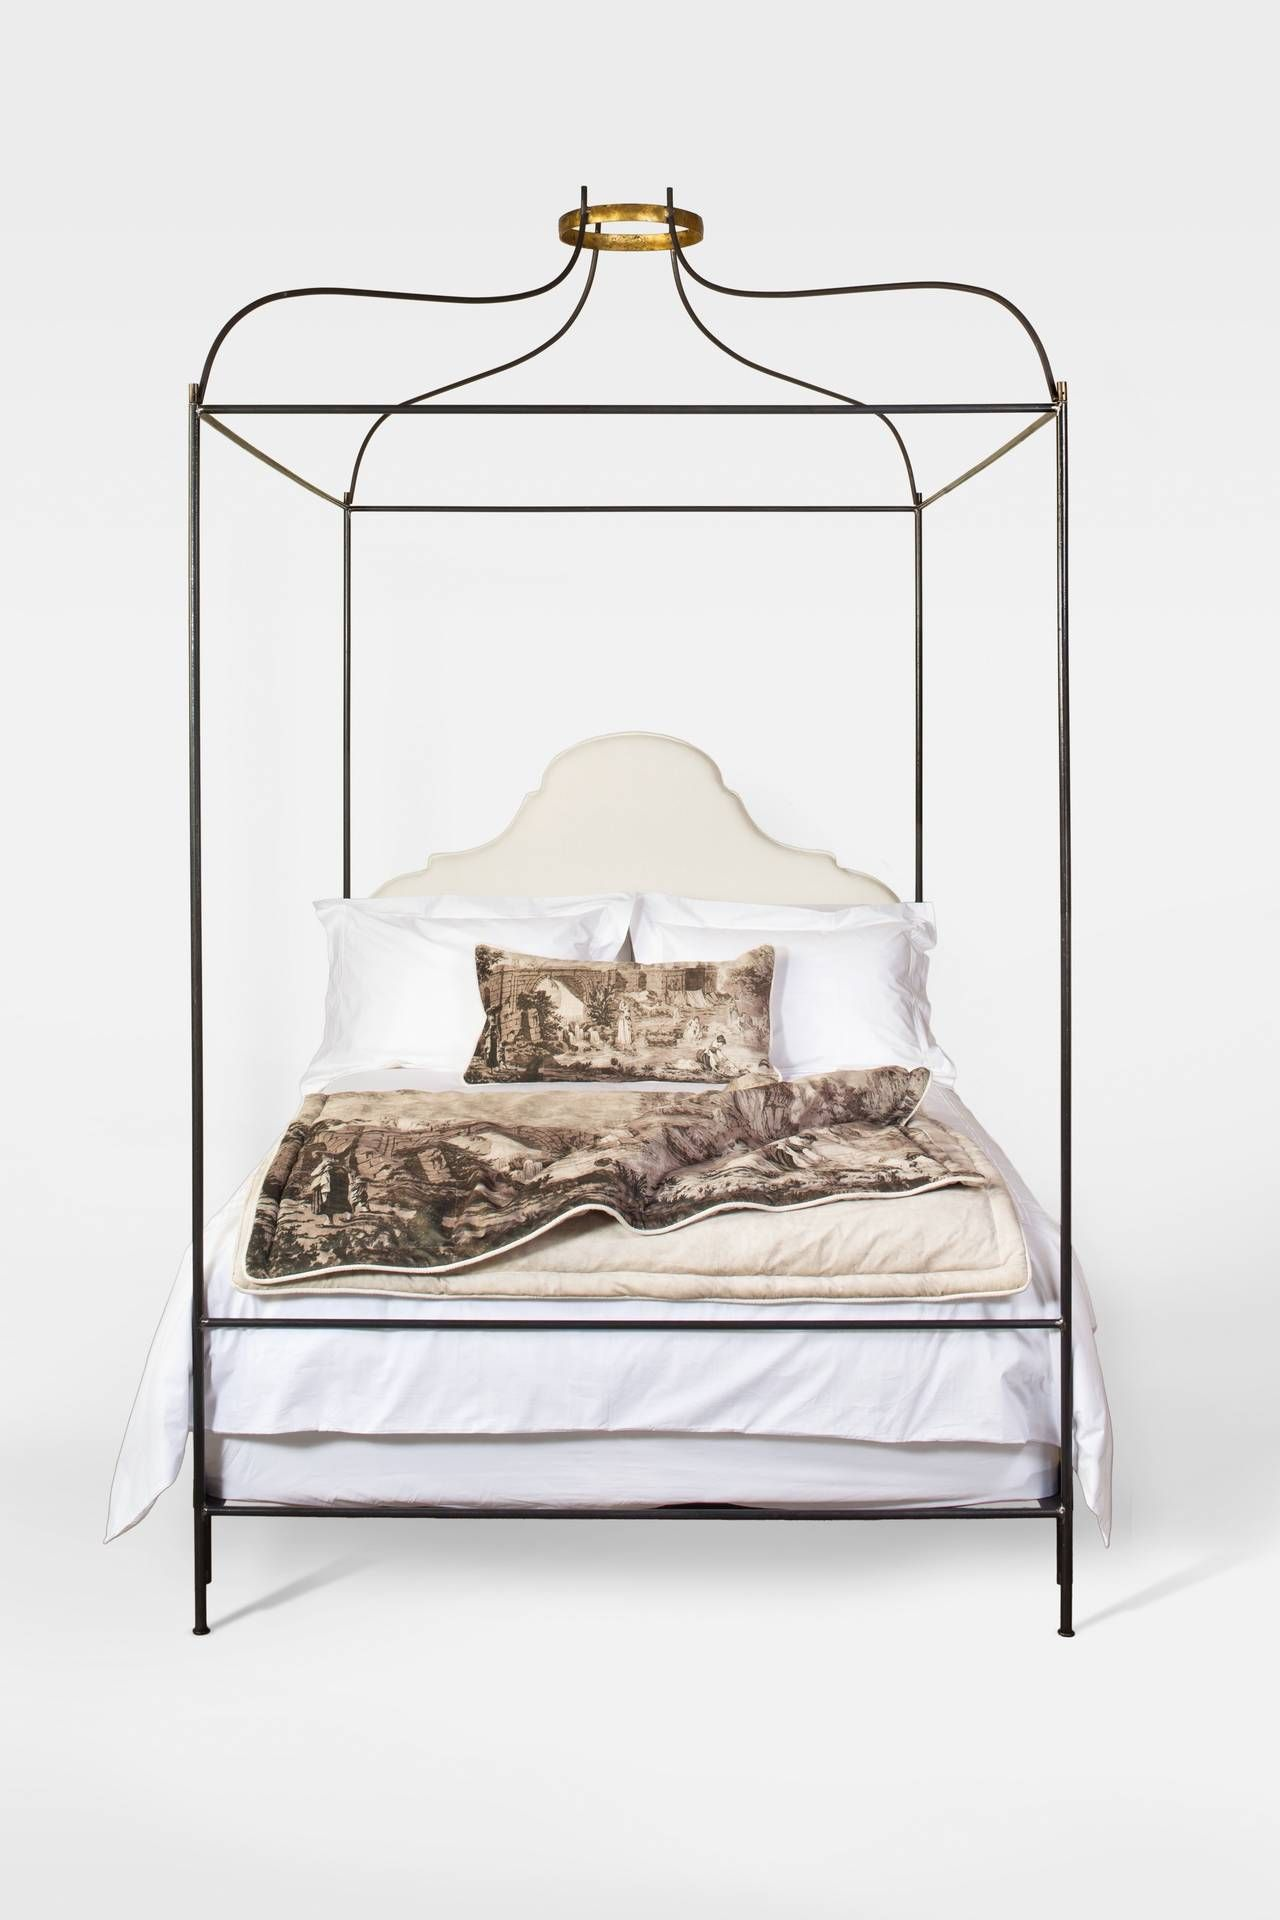 chrome canopy bed king on cubic chrome queen four poster canopy bed mid century canopy beds for sale king size canopy bed vintage bed pinterest